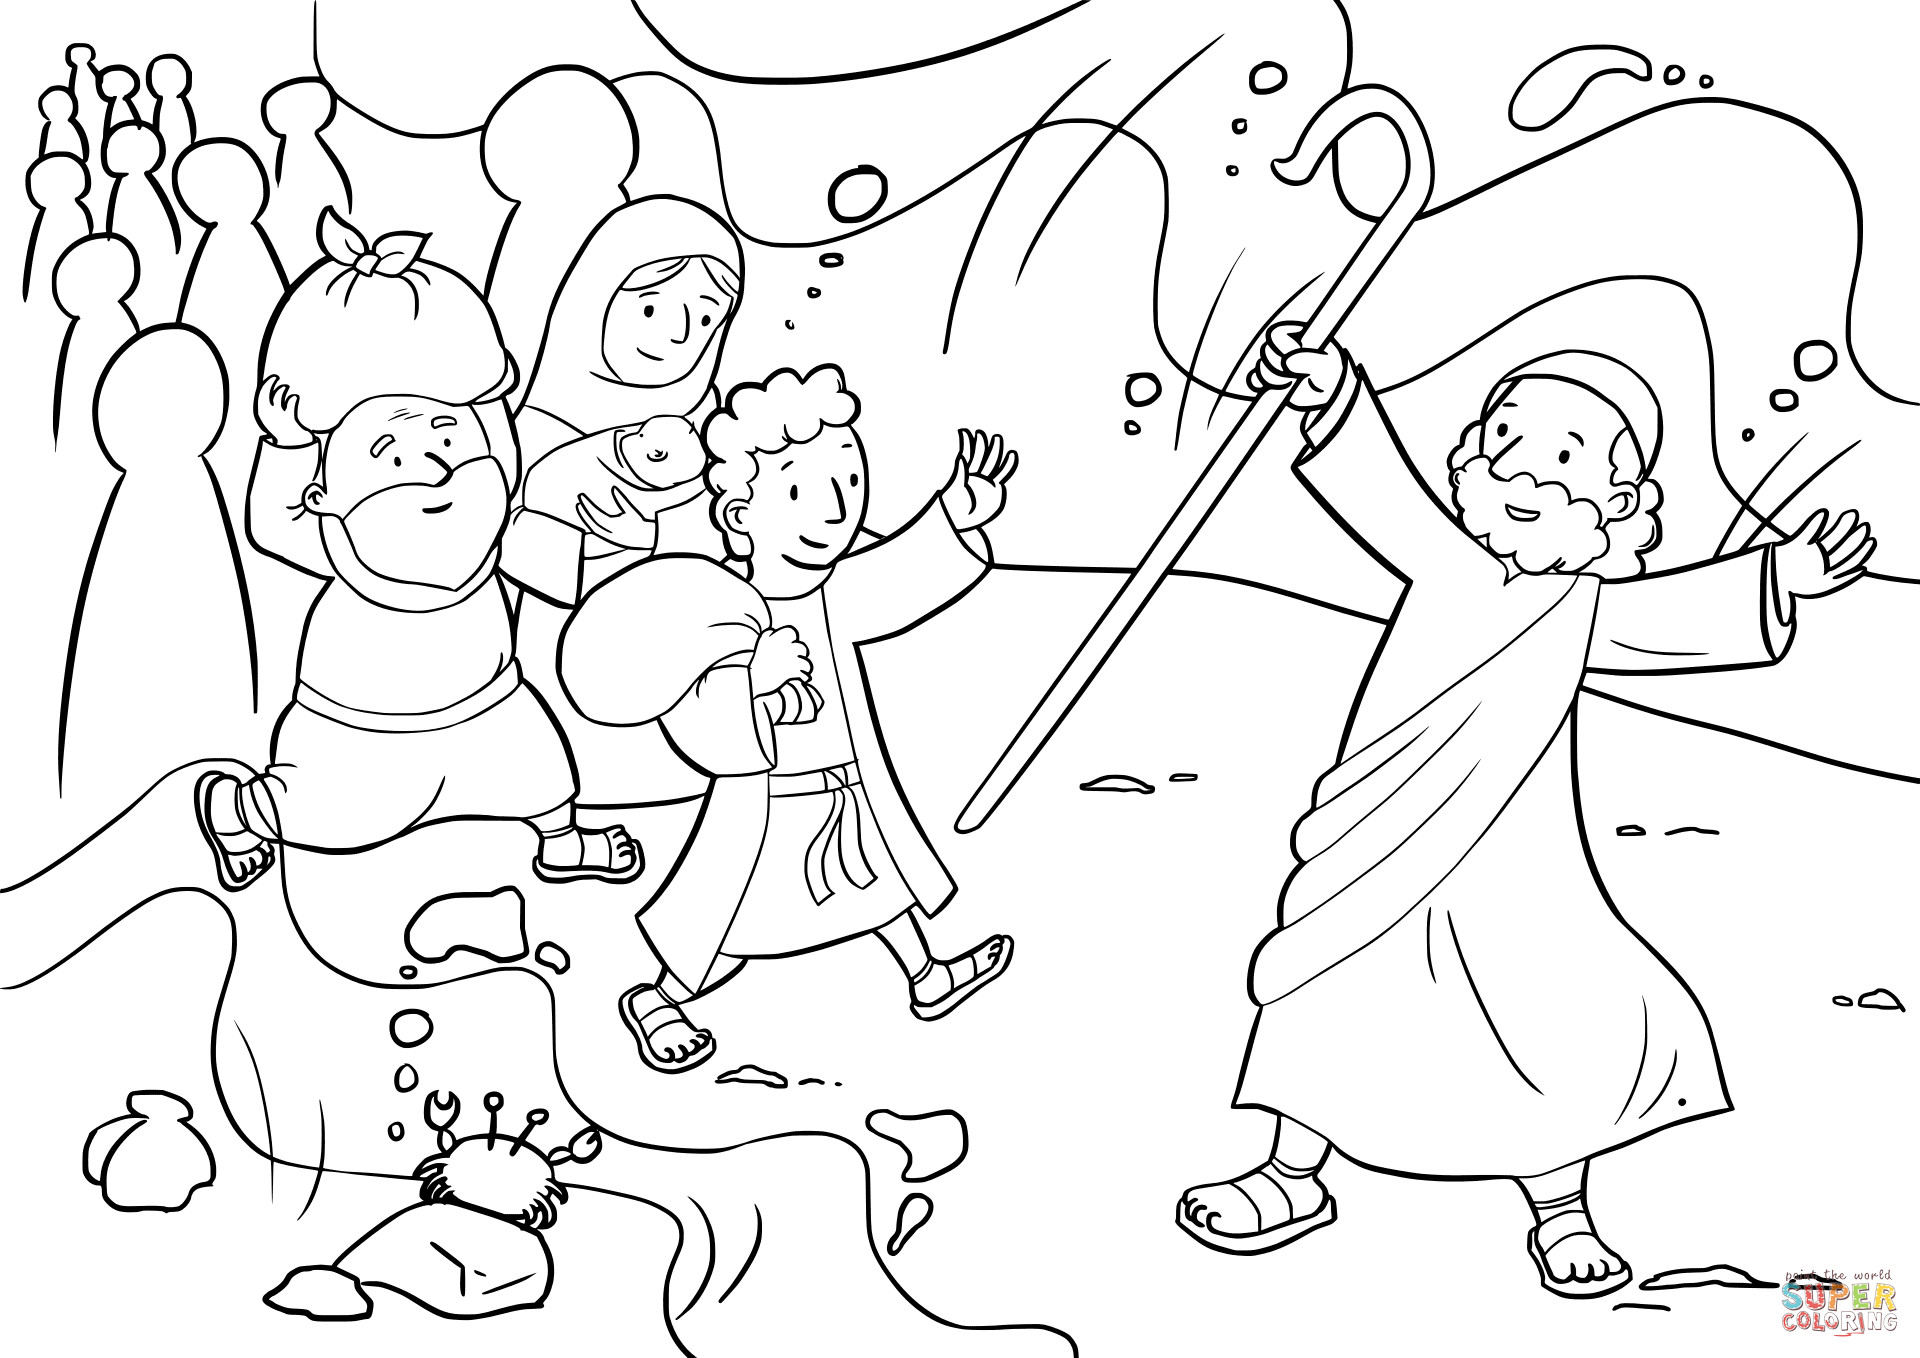 1920x1358 Israelites Cross The Red Sea Coloring Page Free Printable